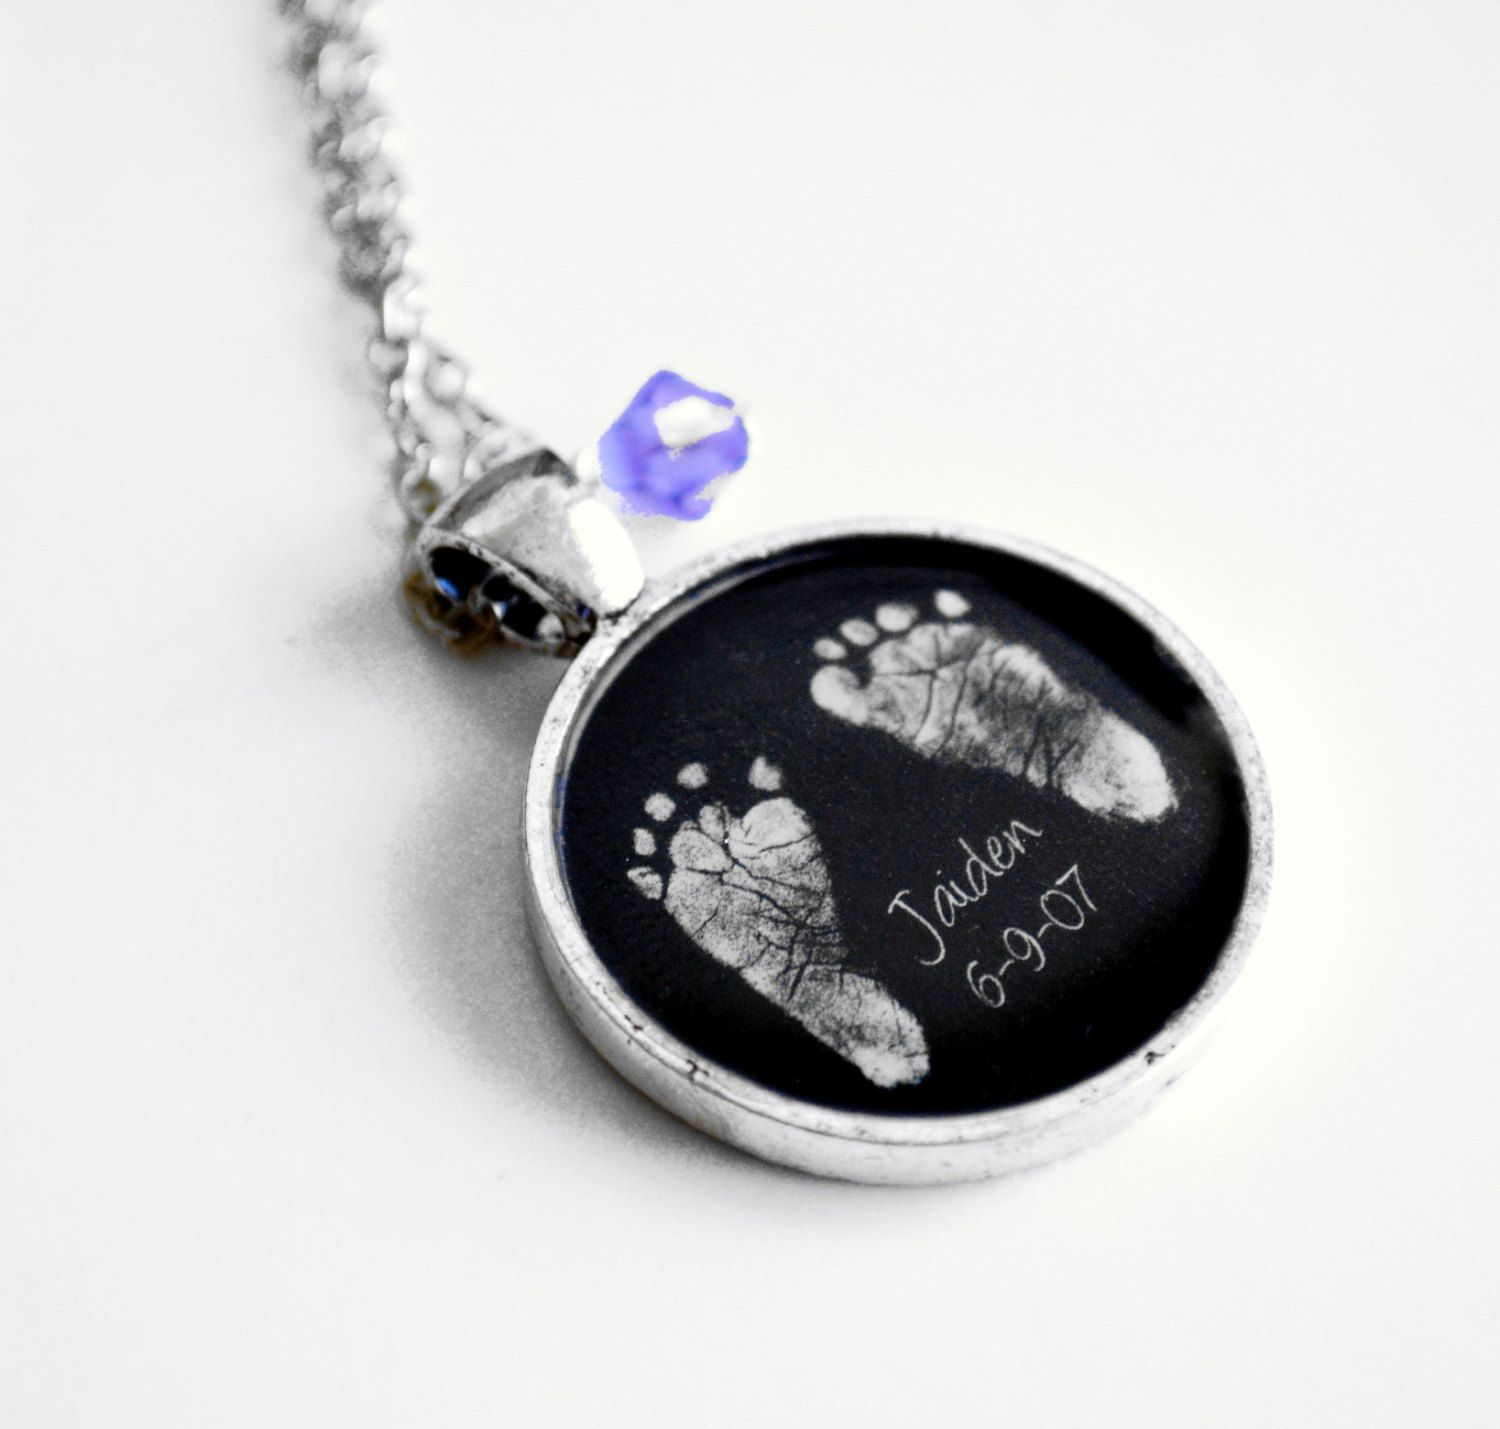 locket original ash online shop charm keepsake jewellery with by cremation urn for memorial pendant in necklace australia wings angel letter